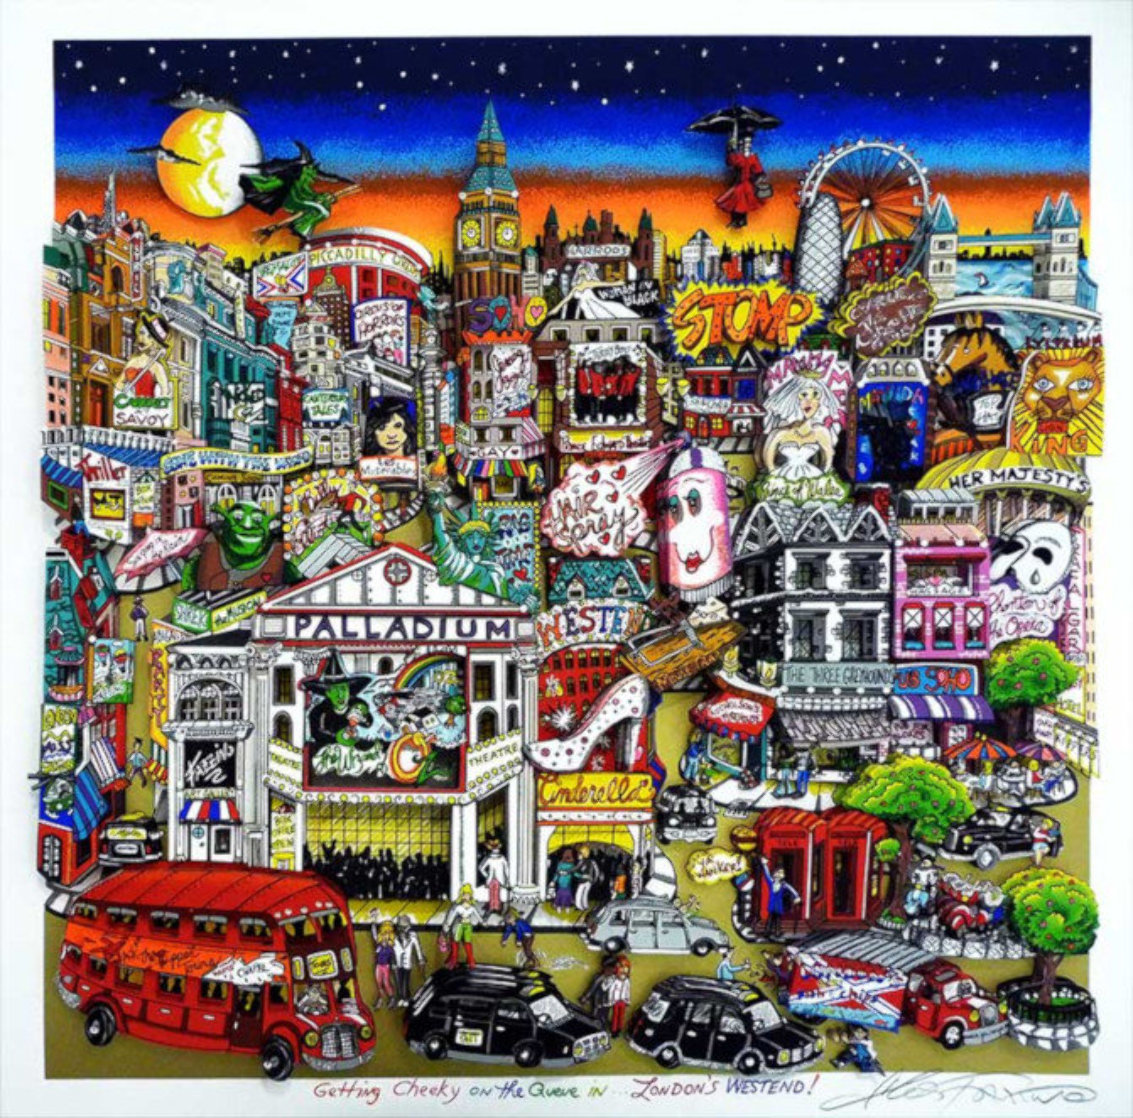 Getting Cheekie on the Queue in London's West End 2014 3-D Limited Edition Print by Charles Fazzino